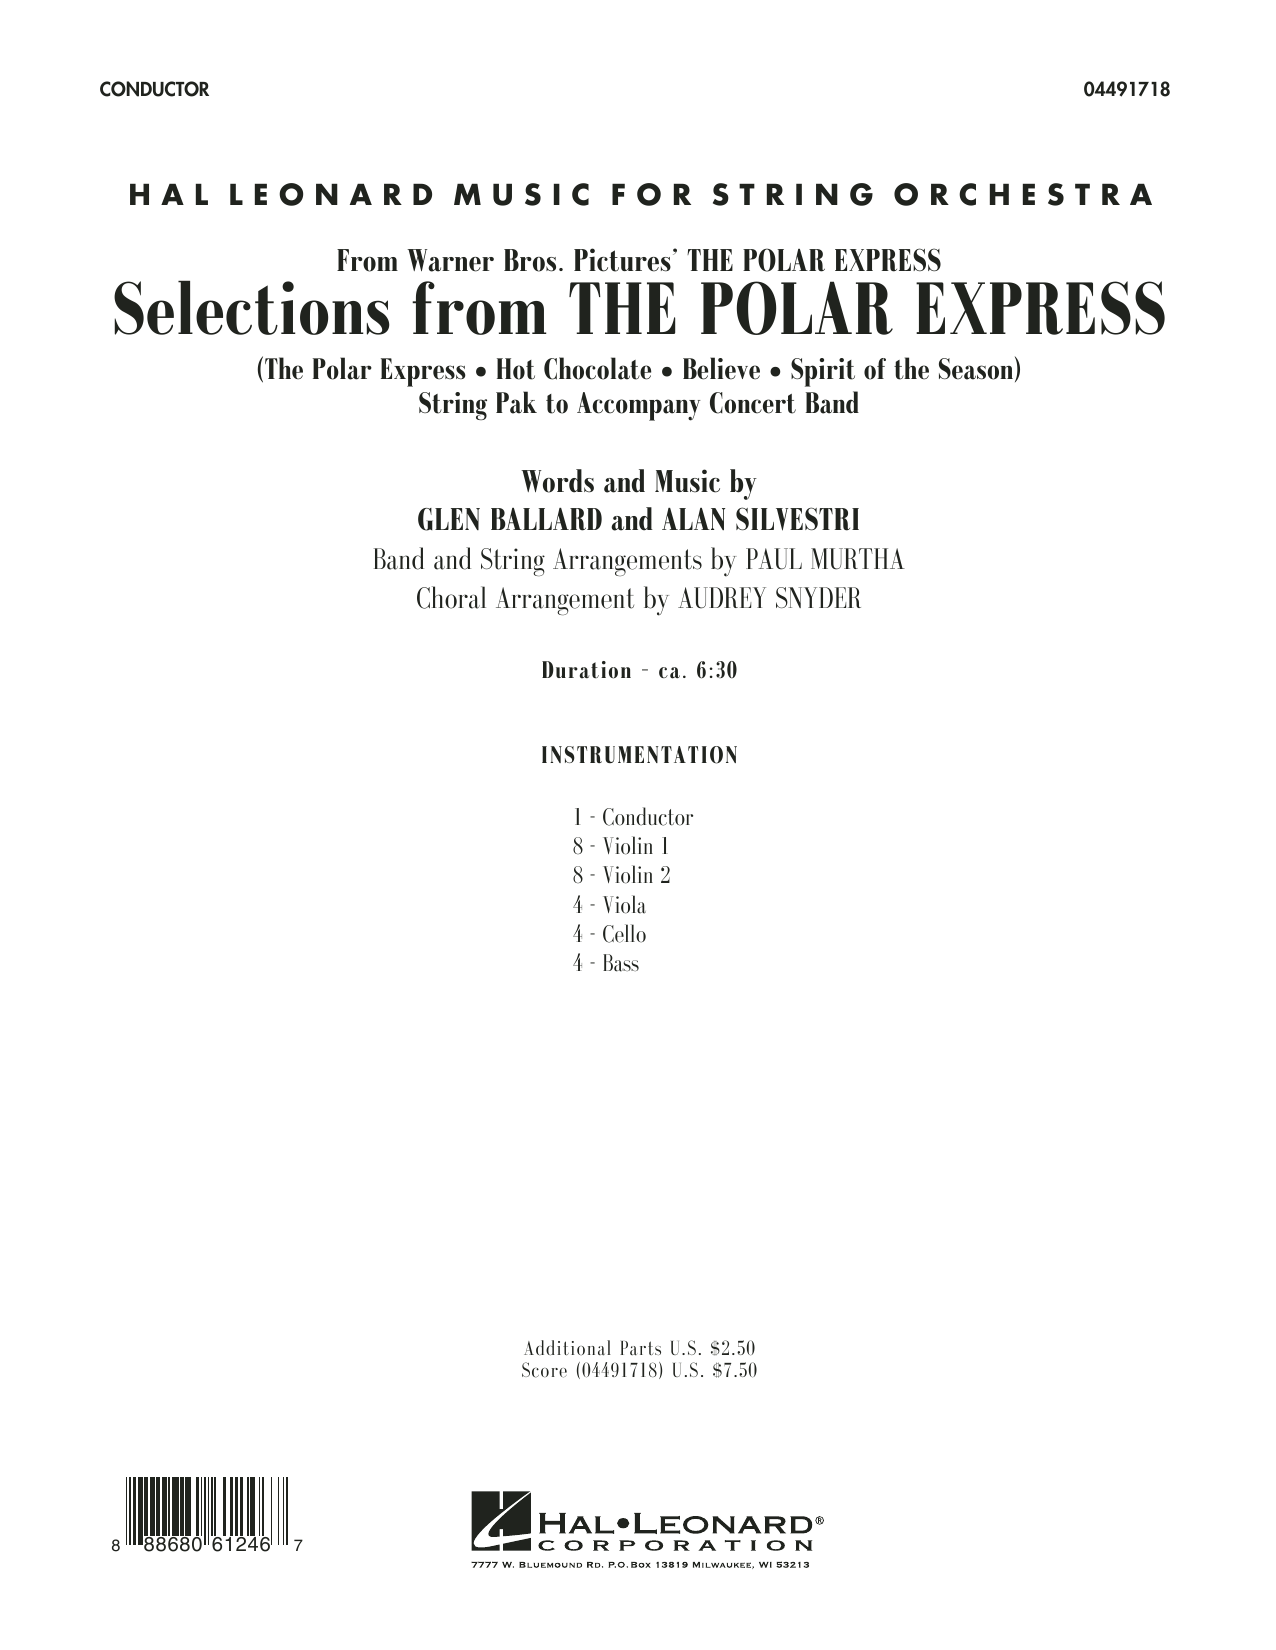 Audrey Snyder - The Polar Express - Conductor Score (Full Score)